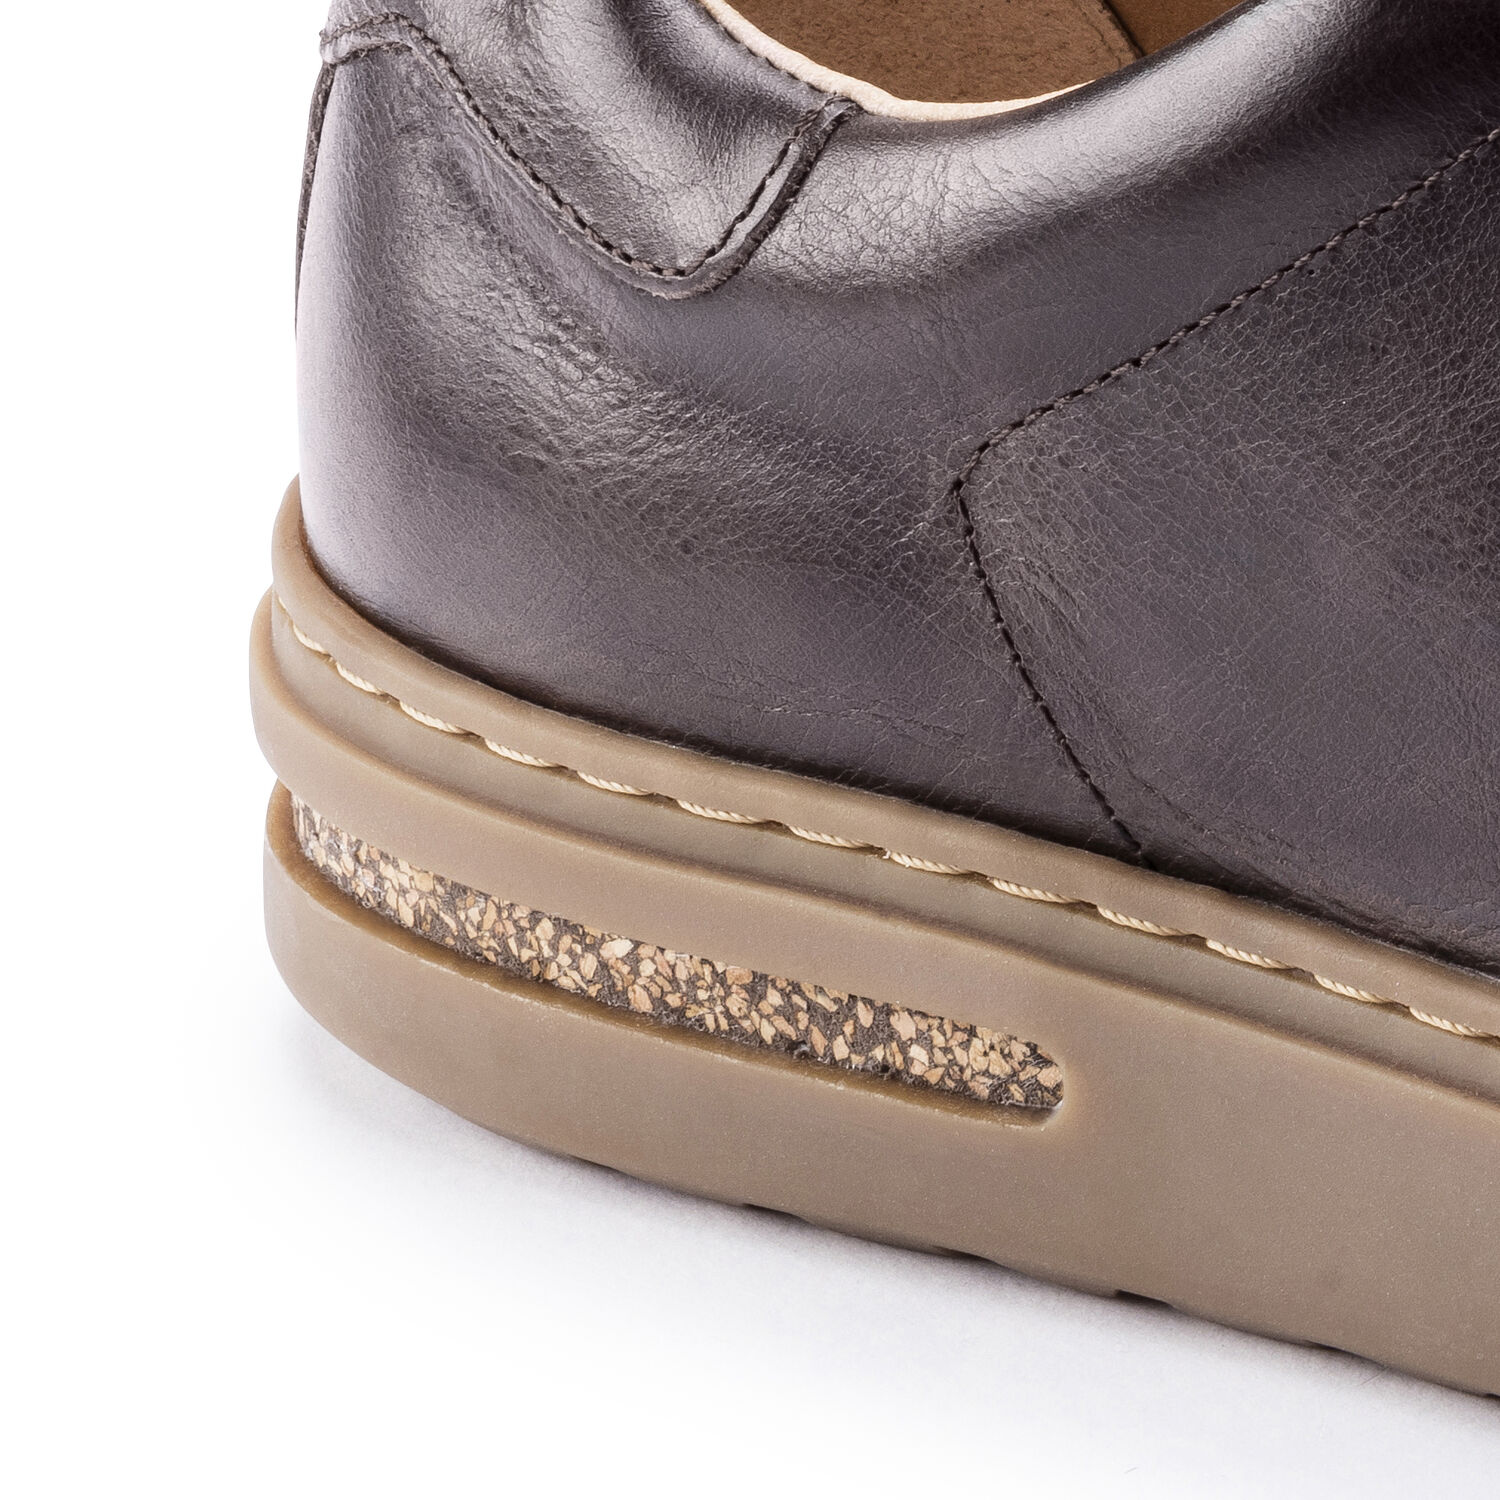 Bend Low Natural Leather